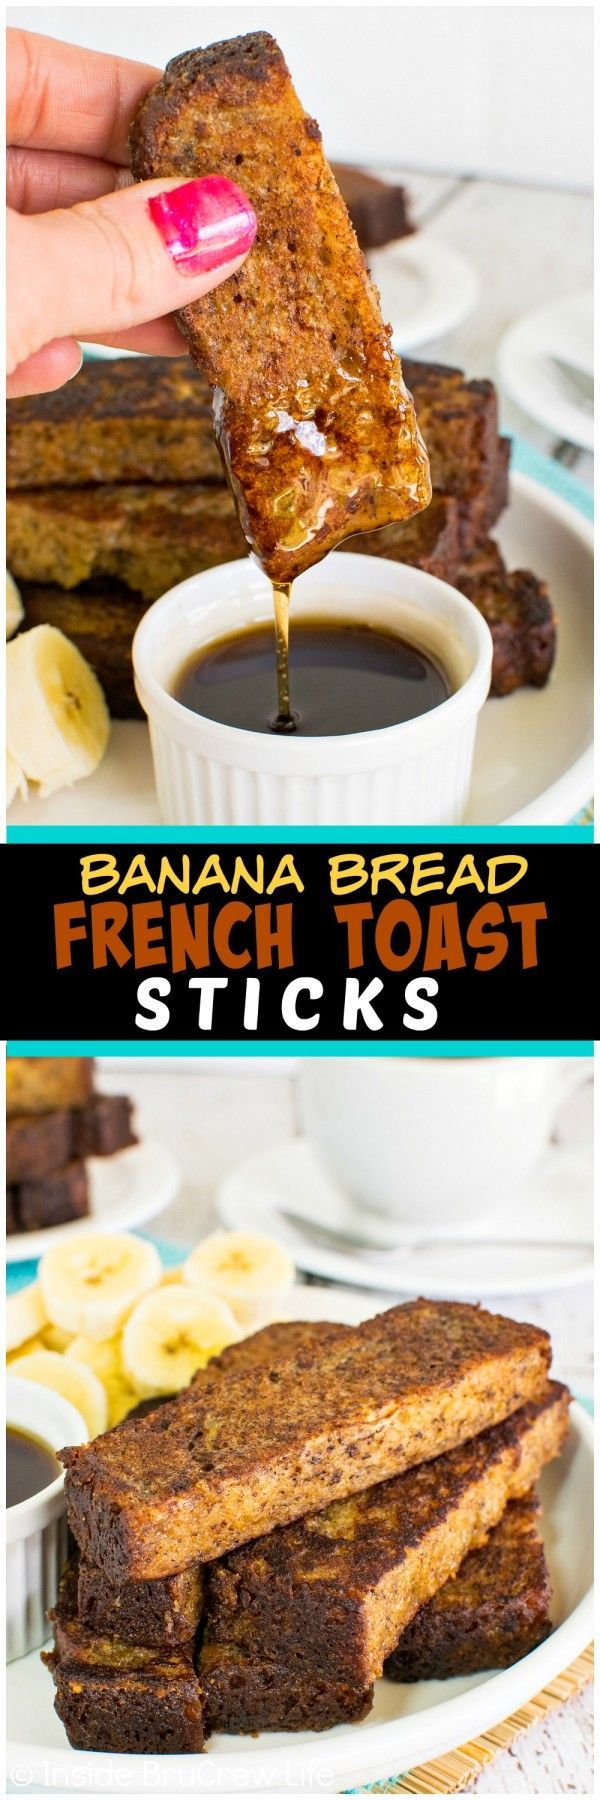 Banana Bread French Toast Sticks - use your favorite banana bread to make these dunkable breakfast treats. Freeze this recipe for busy mornings!